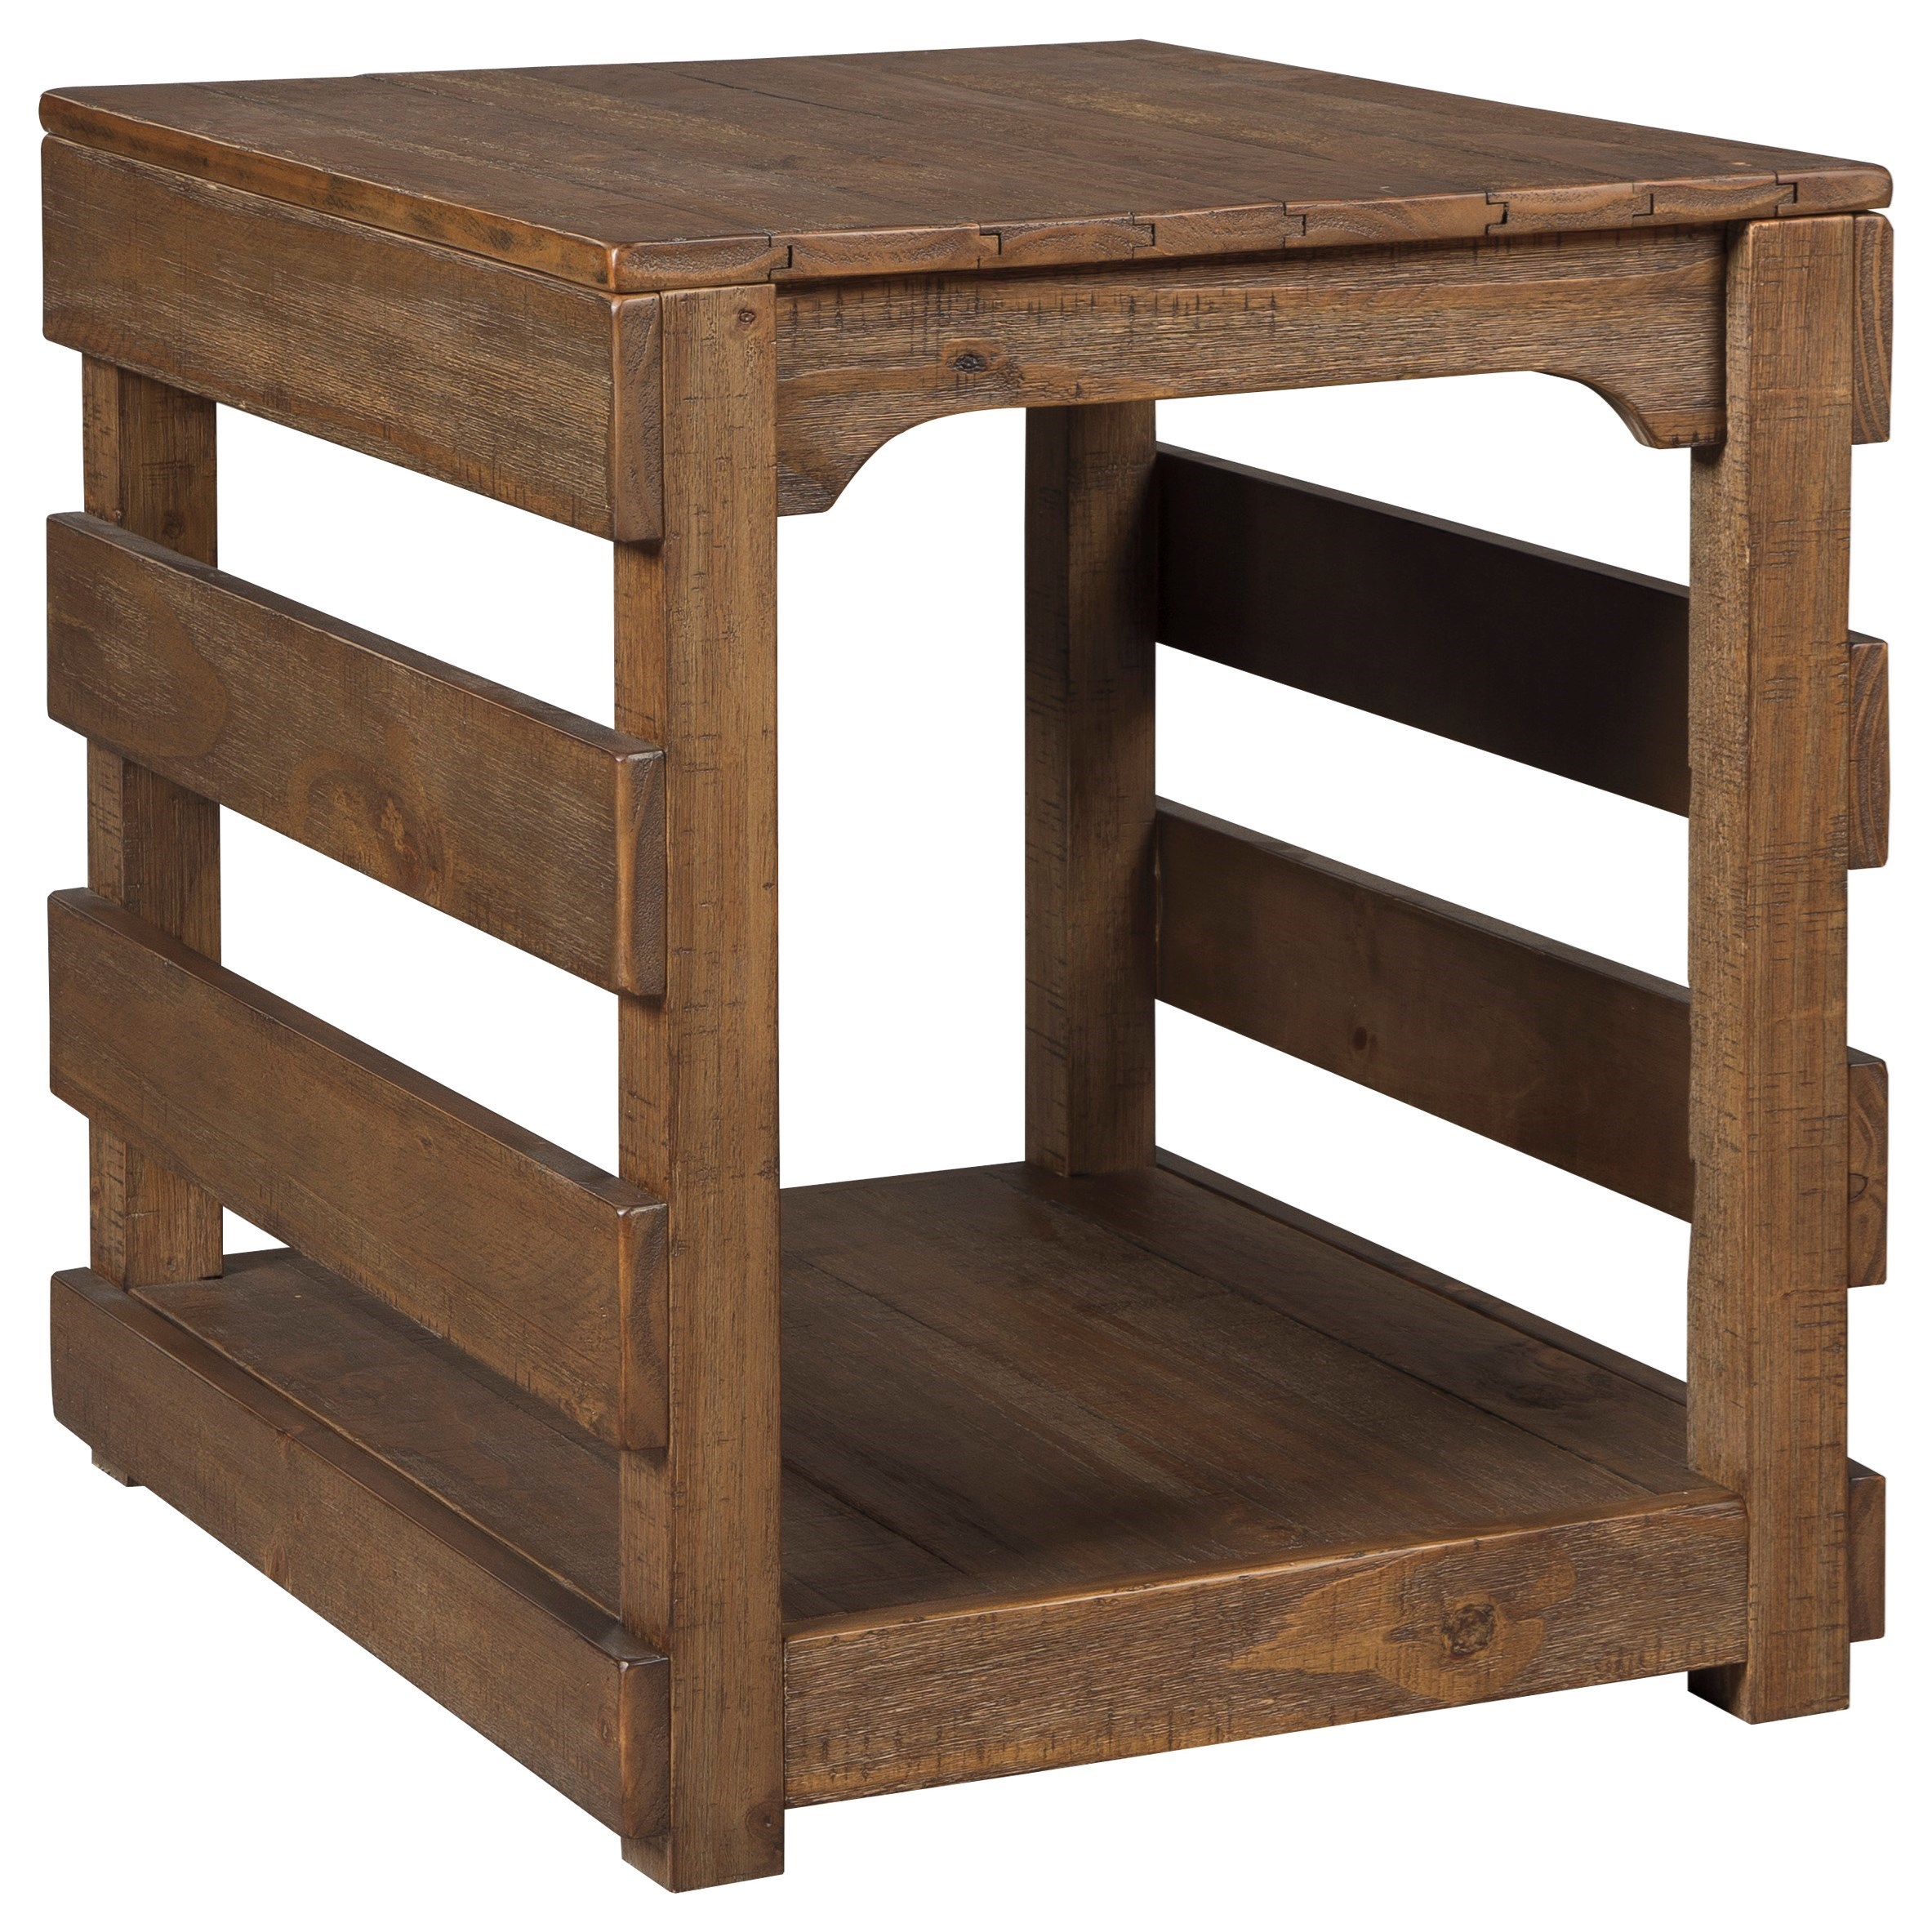 Signature Design by Ashley Shanlore Rectangular End Table - Item Number: T795-3